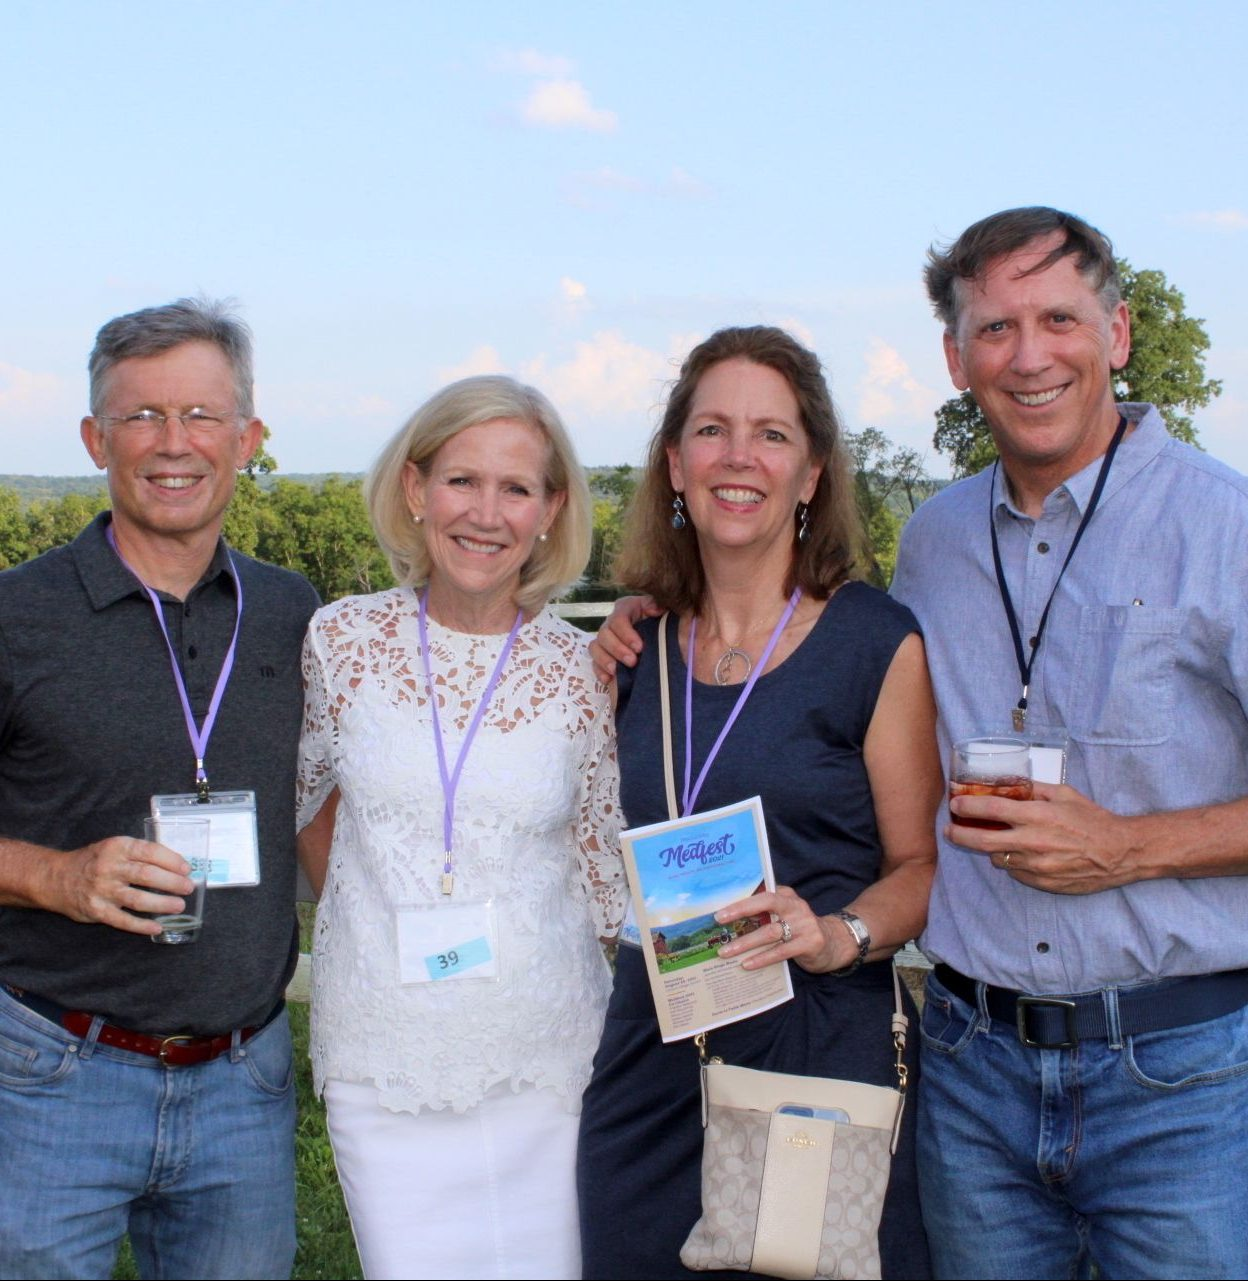 """Medworks """"Medfest 2021: An Evening of Music, Mission, and Unconditional Care"""""""